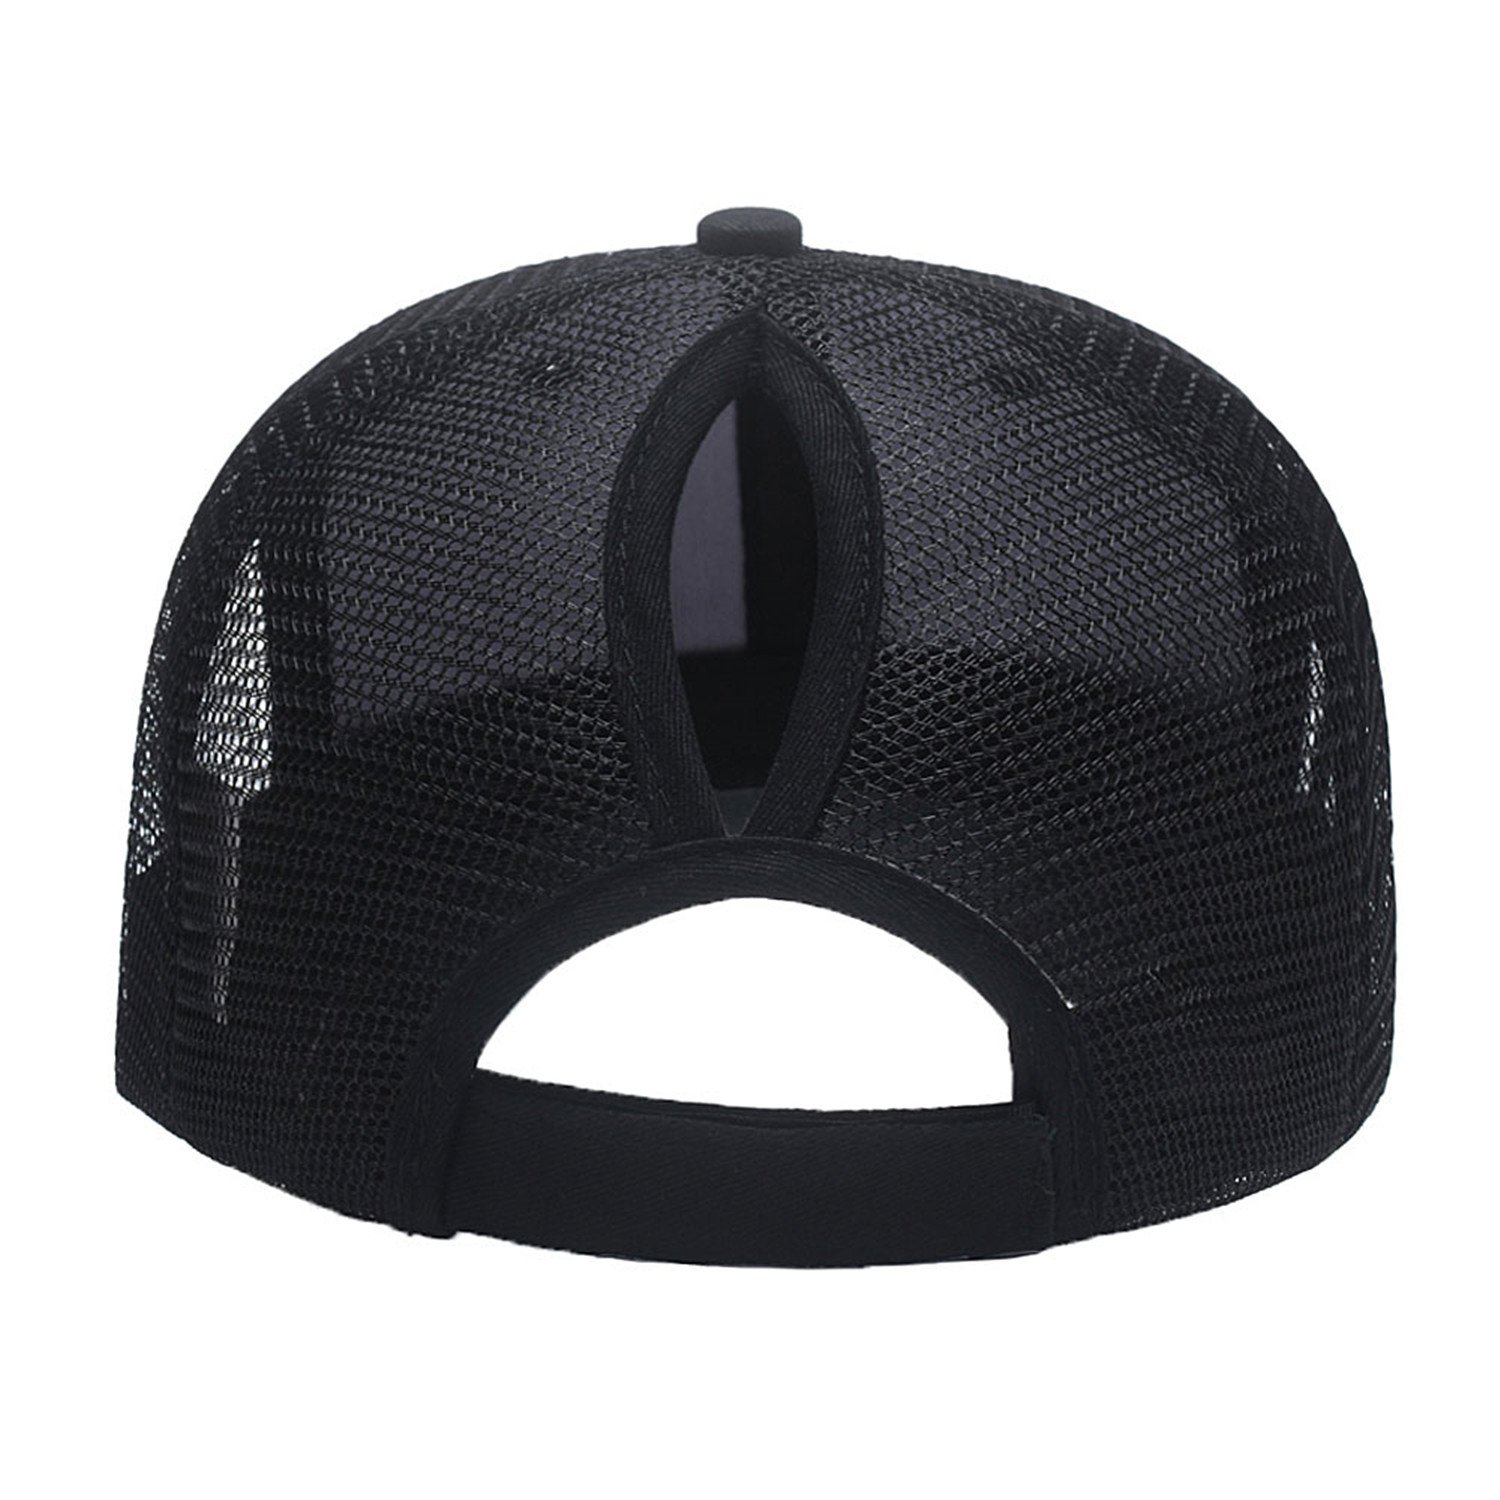 afc79a365b711 Amazon.com  Custom Mesh Trucker Hat Fashion High Ponytail Hat for Men Women  Messy Buns Hats